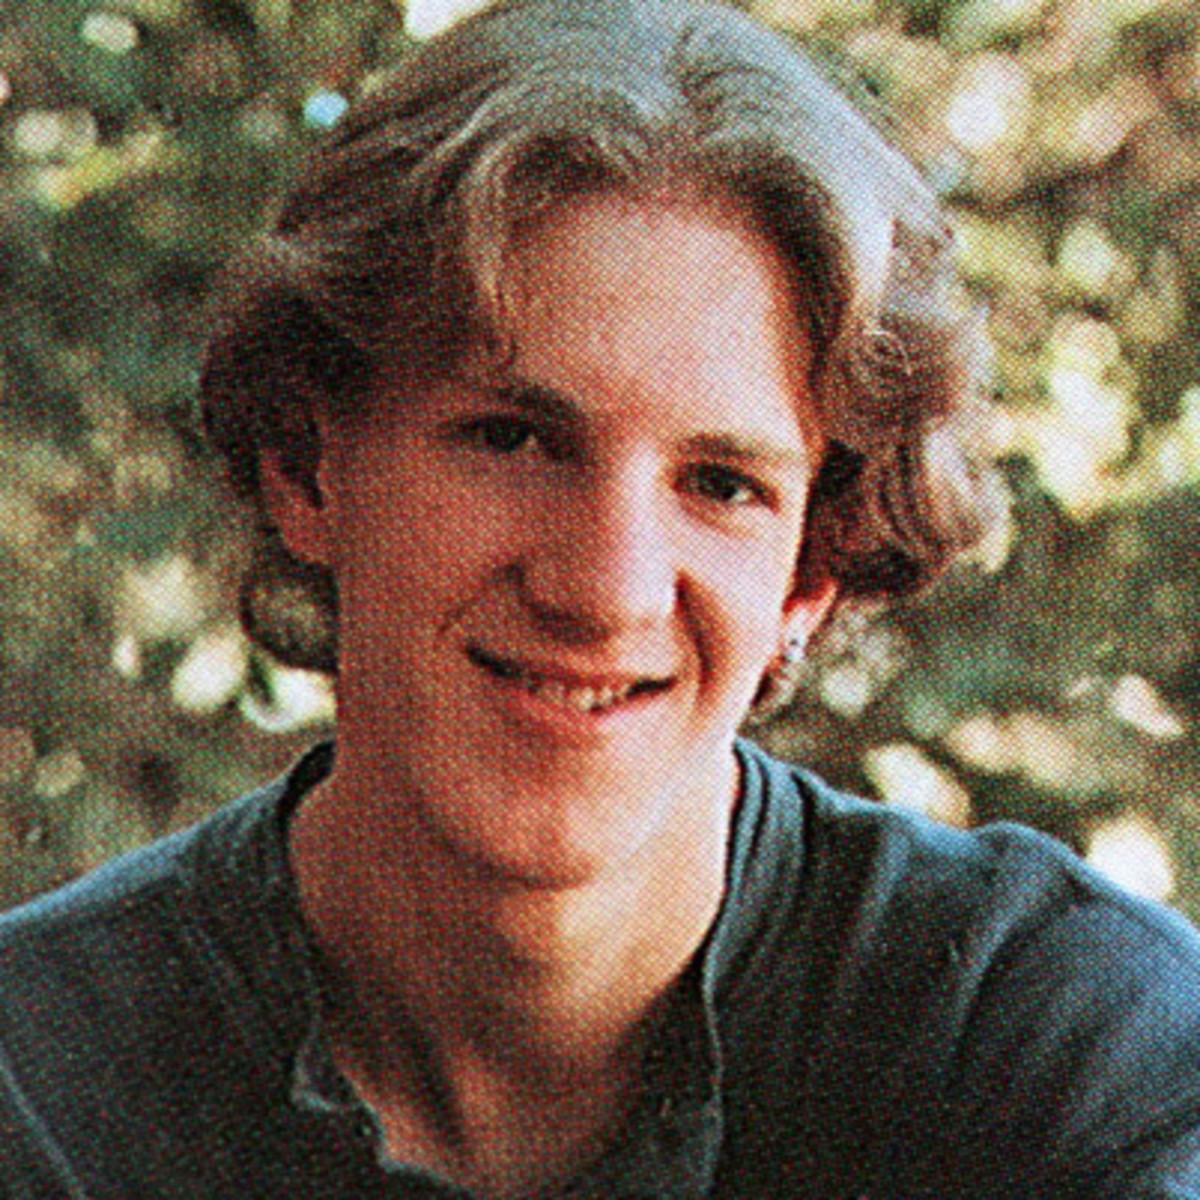 eric harris Title: autopsyfilesorg - eric harris autopsy report author: autopsyfilesorg subject: autopsyfilesorg - eric harris autopsy report keywords: columbine high school.